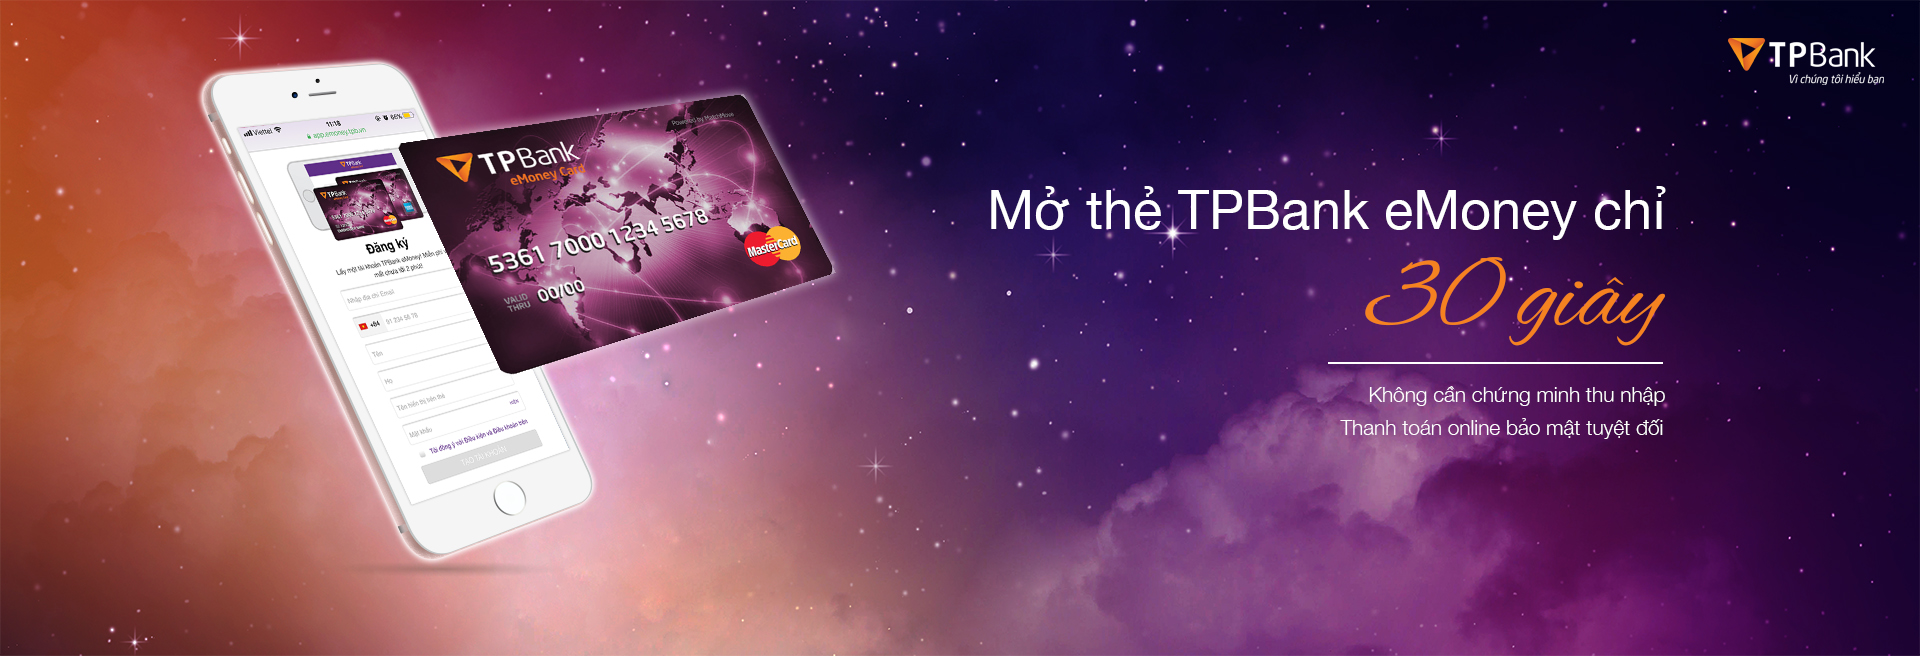 TPBank Emoney